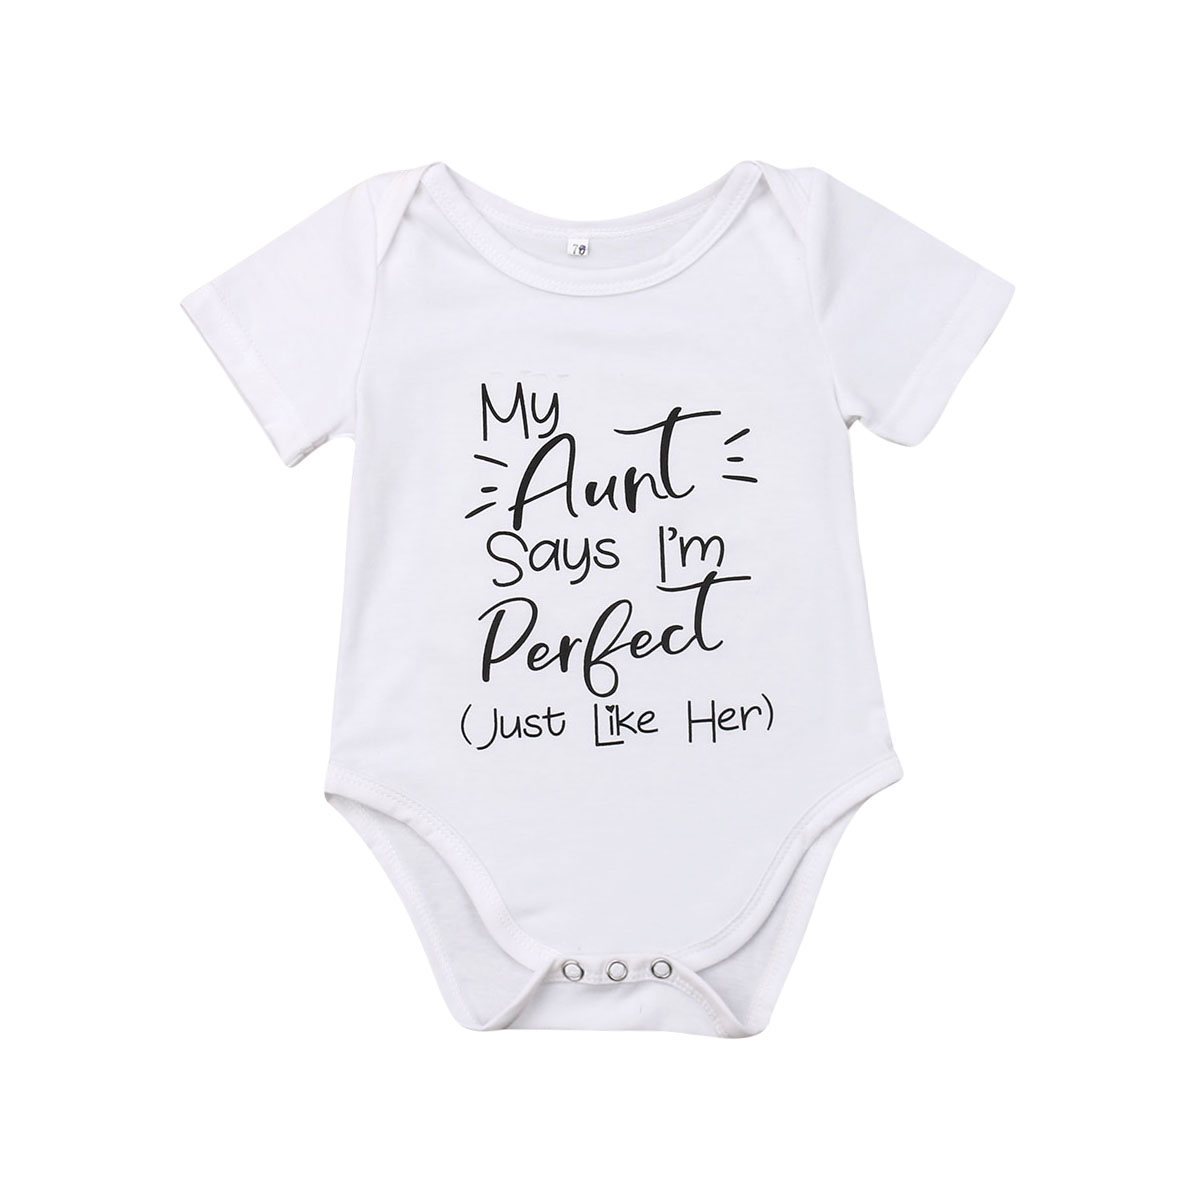 White Baby Bodysuit With My Grandma Think/'s I/'m Perfect in Black Lettering